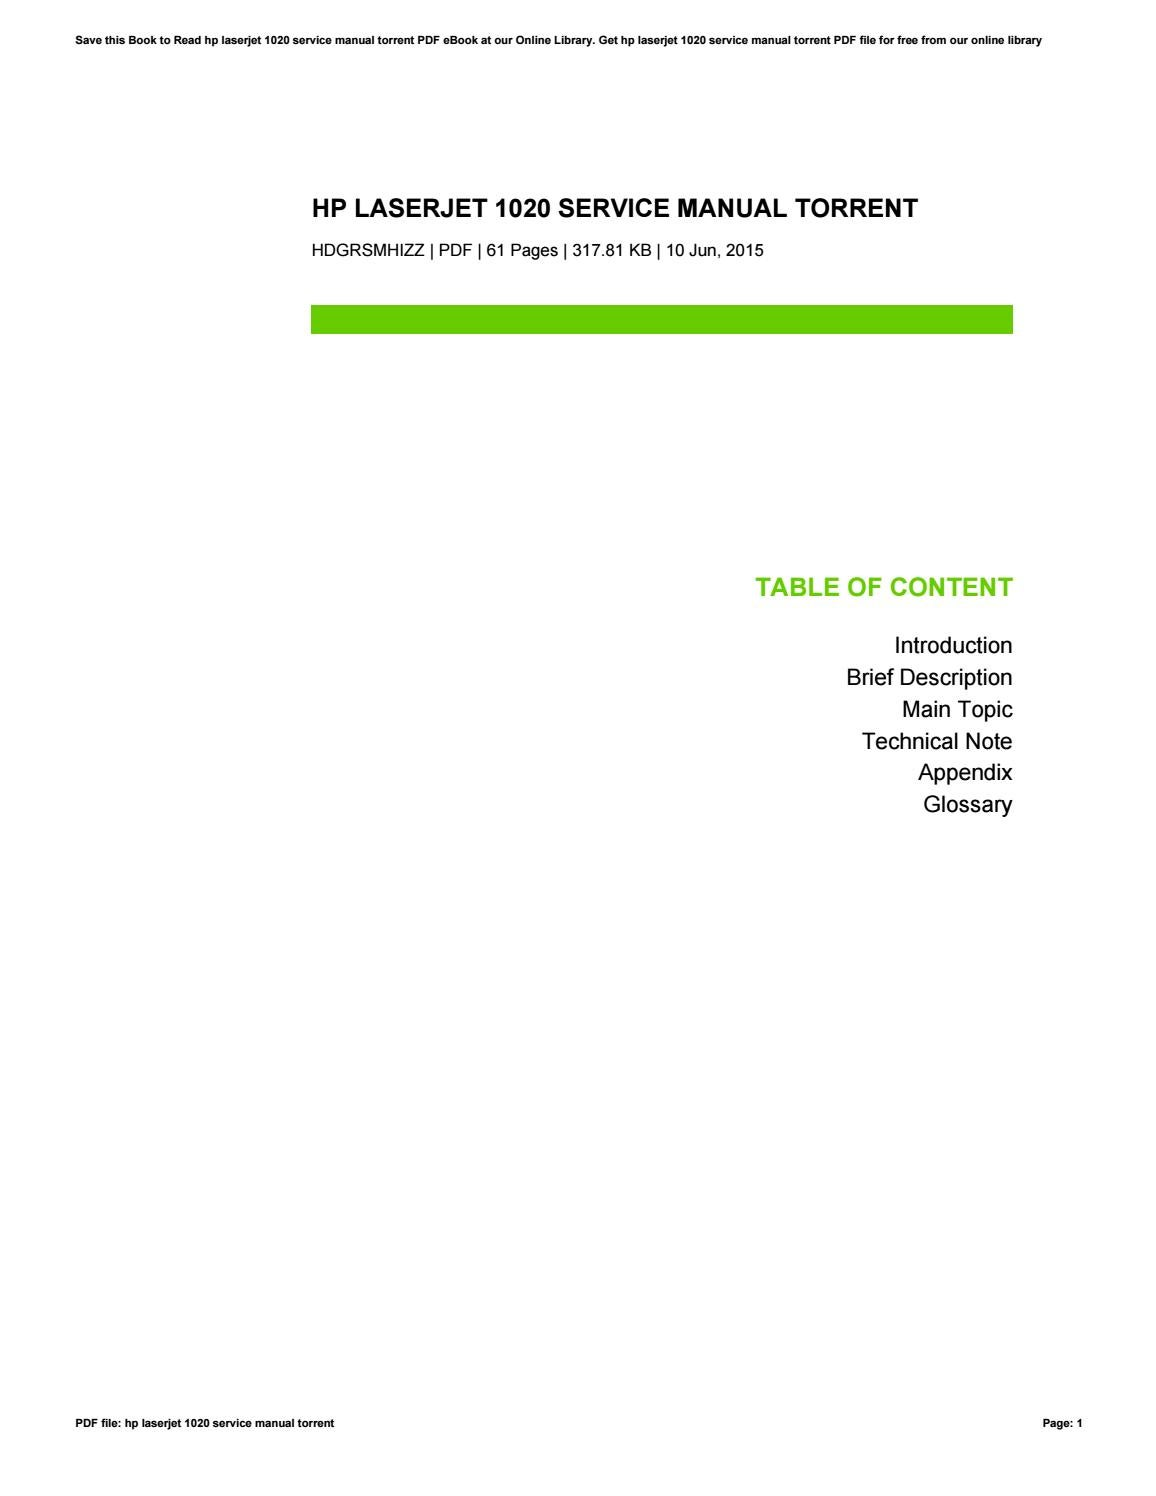 hp j6500a service manual torrent